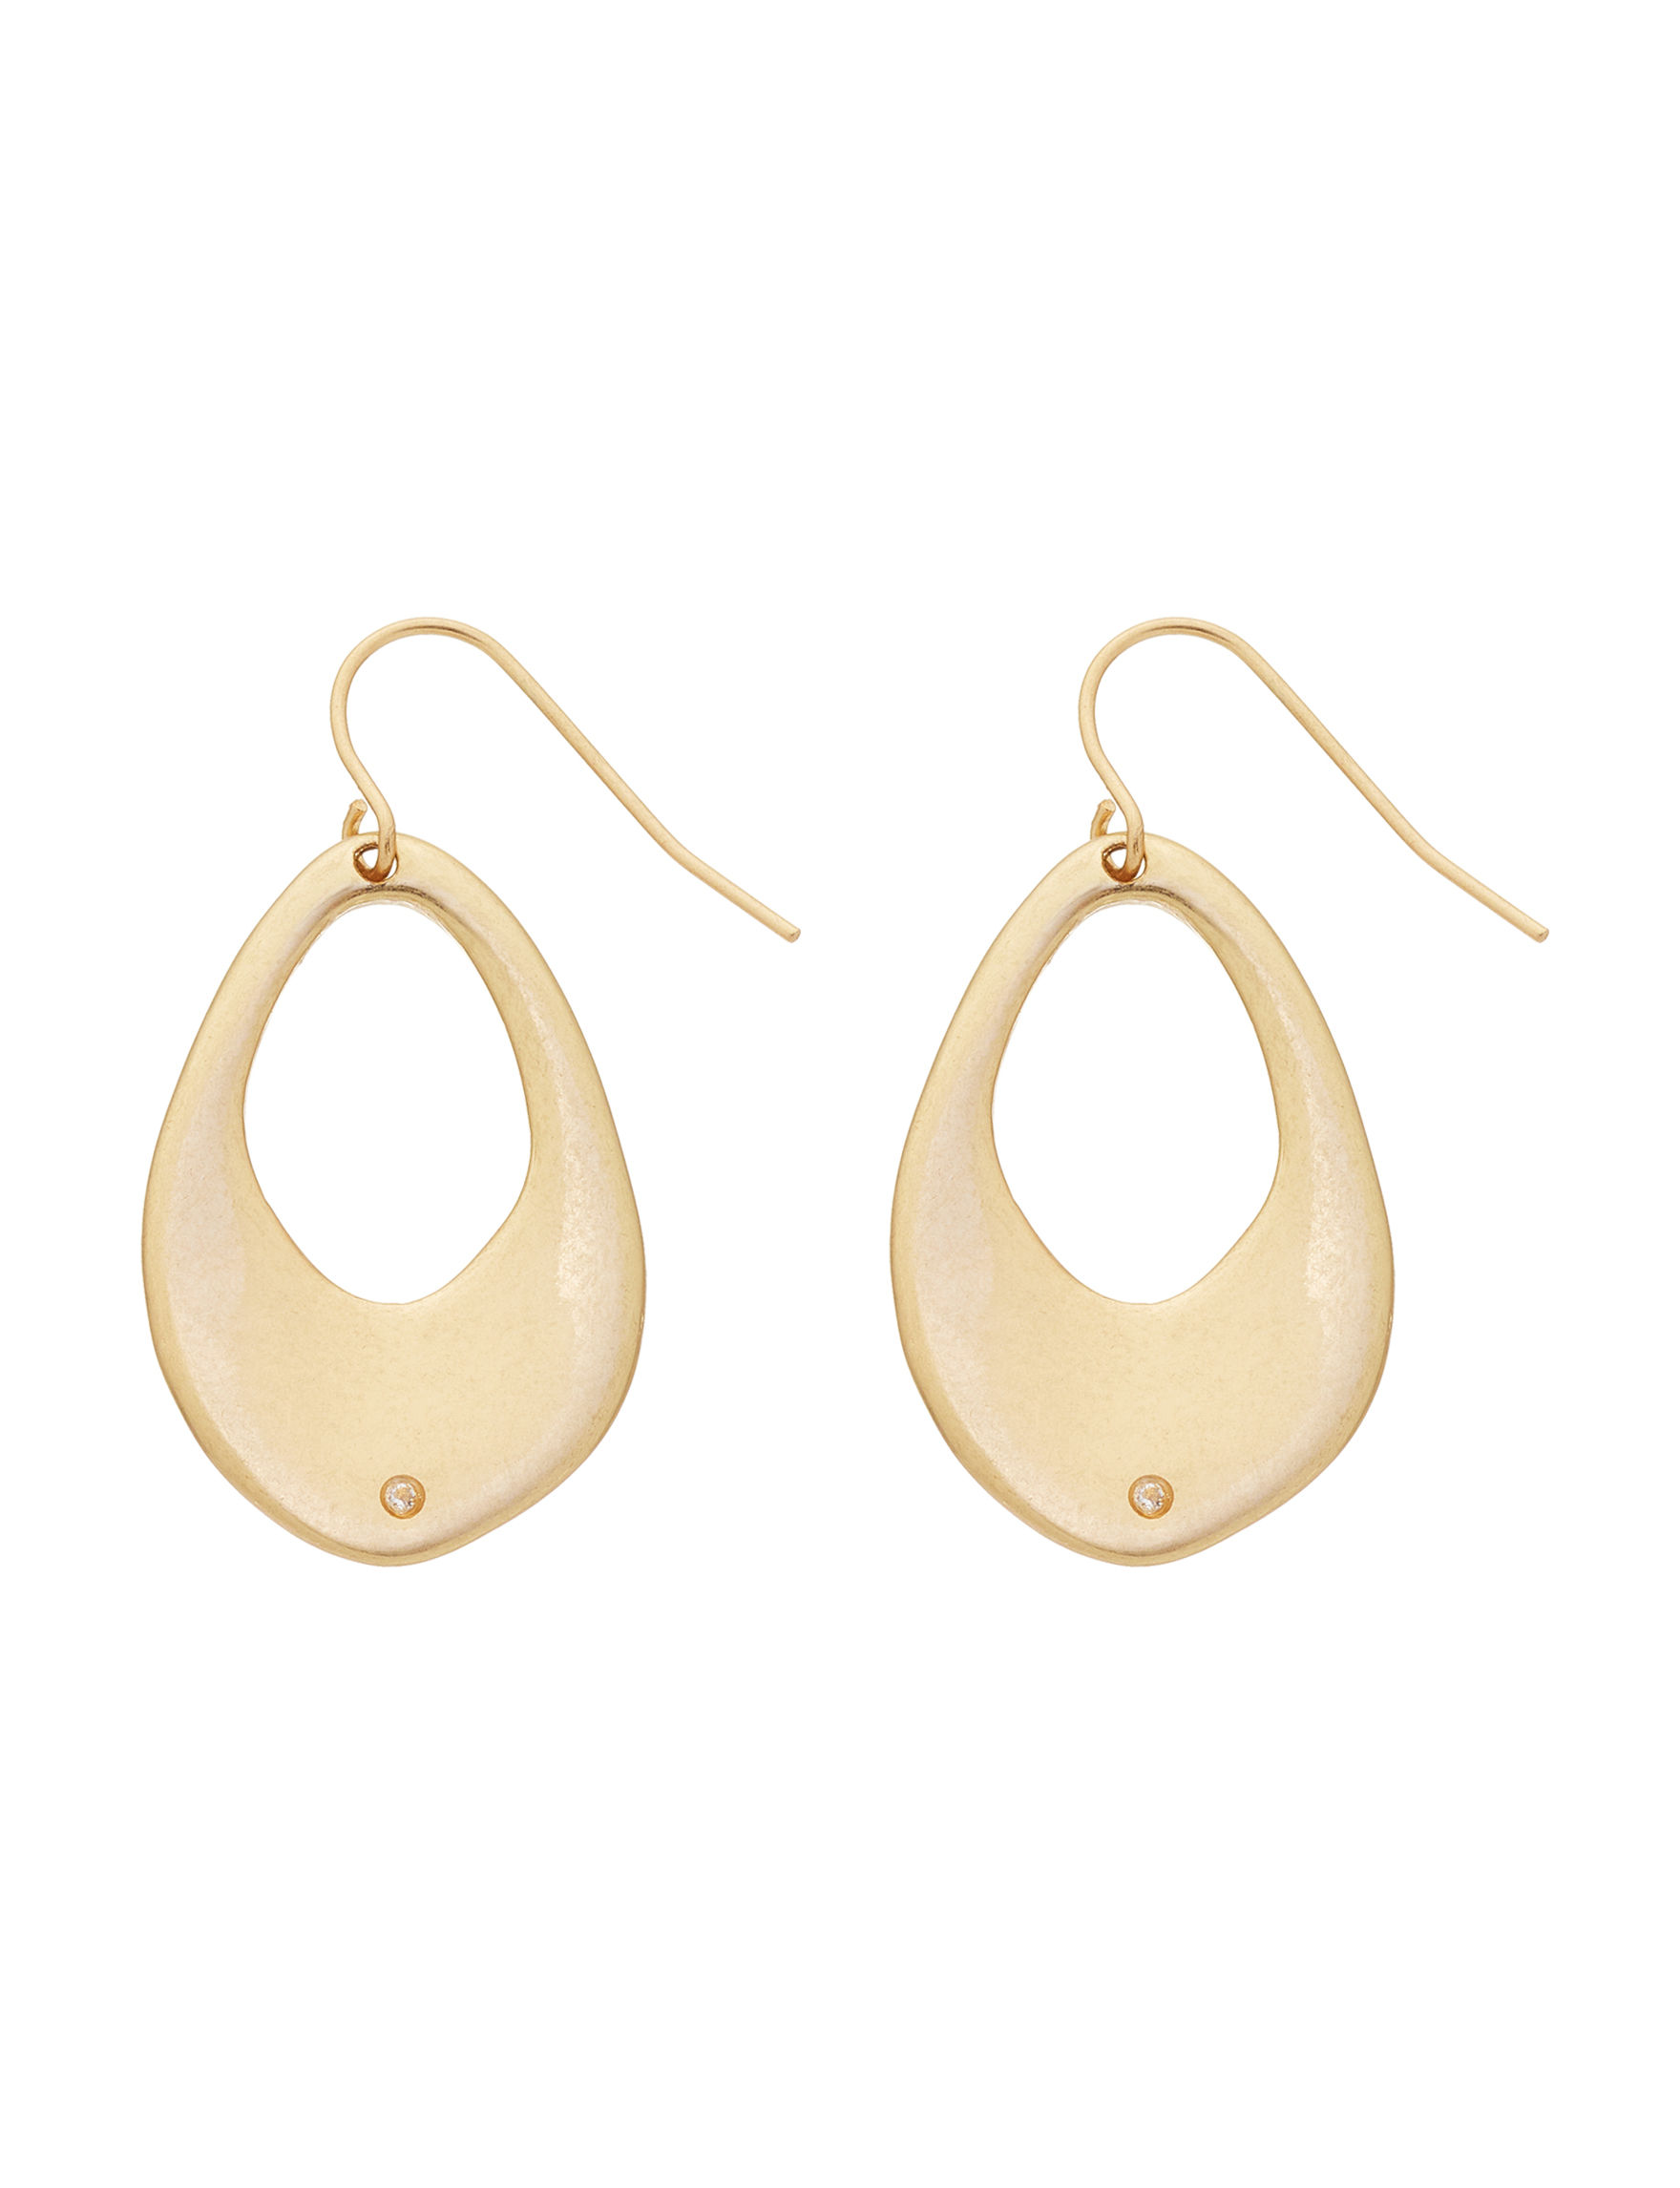 Bella Uno Gold Drops Earrings Fashion Jewelry